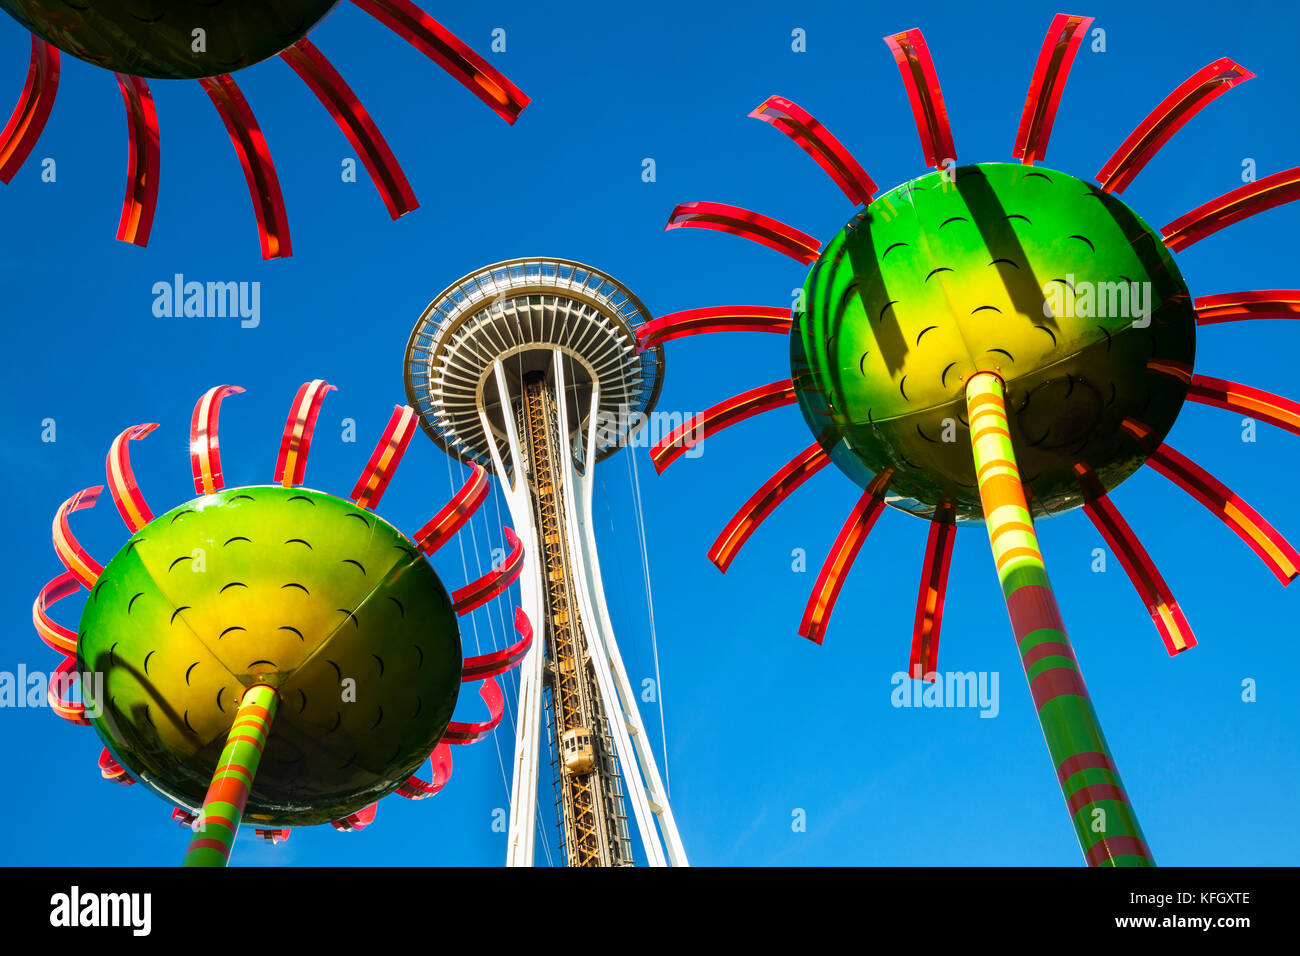 WA141445-00...WASHINGTON - Display called Sonic Bloom with the Space Needle located in the Seattle Center. - Stock Image